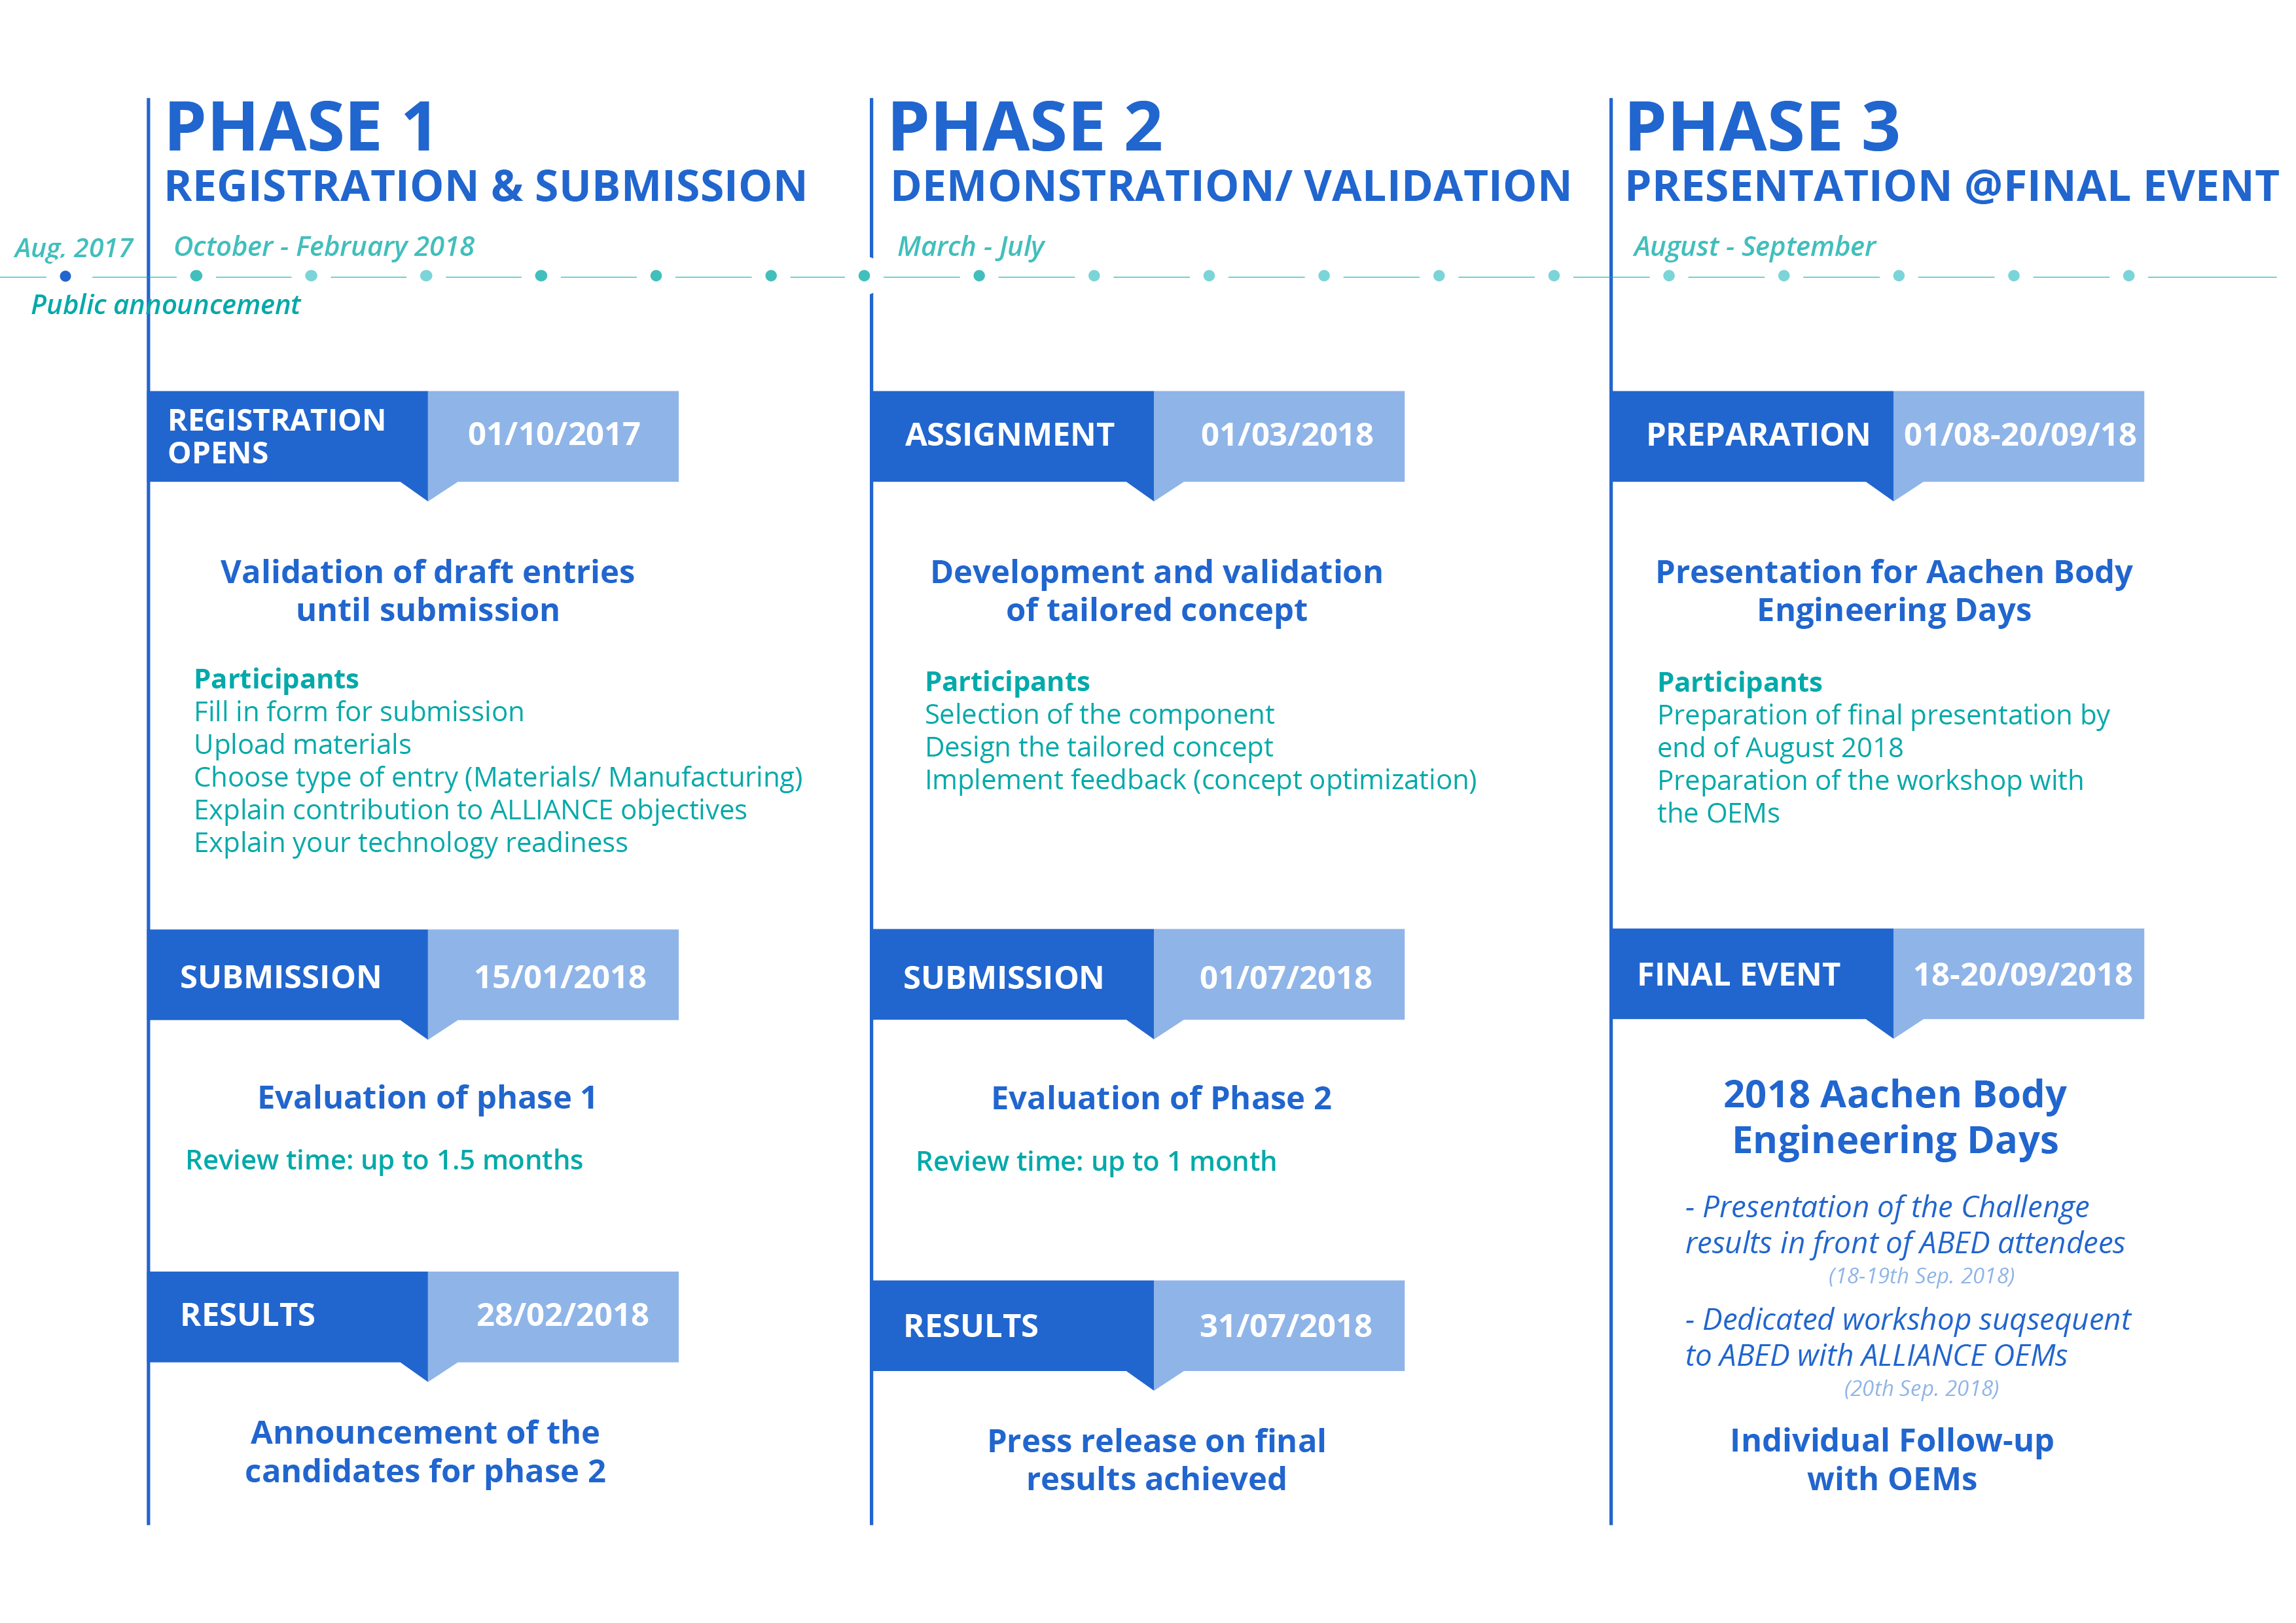 olwc_phases_commercial_summary_v2